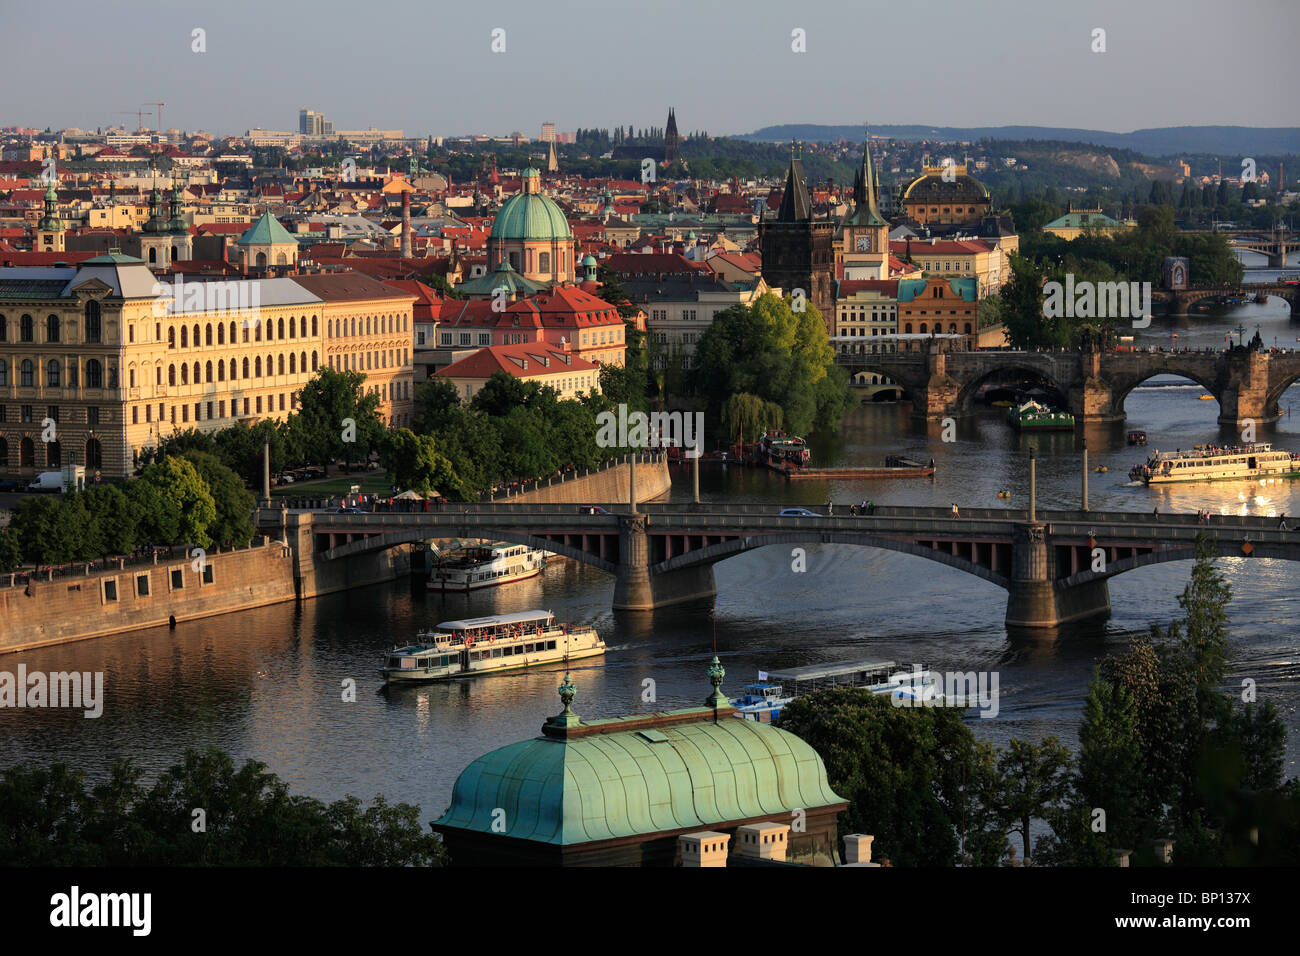 Czech Republic, Prague, Old Town skyline, Vltava River - Stock Image